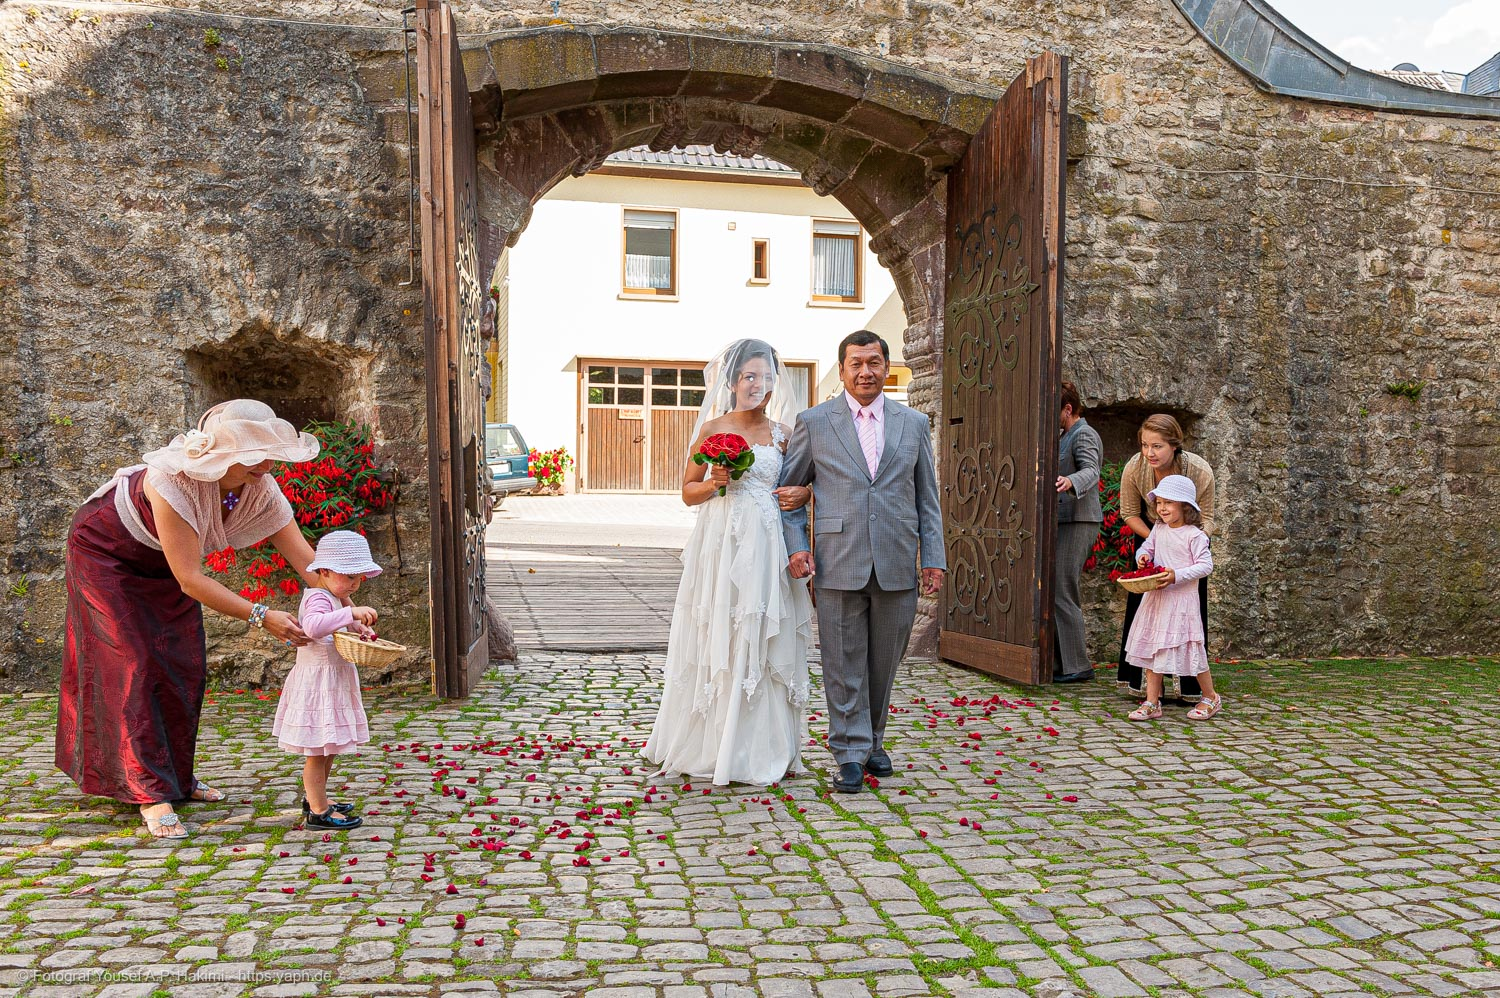 wedding reportage by Yaph photographer in Trier